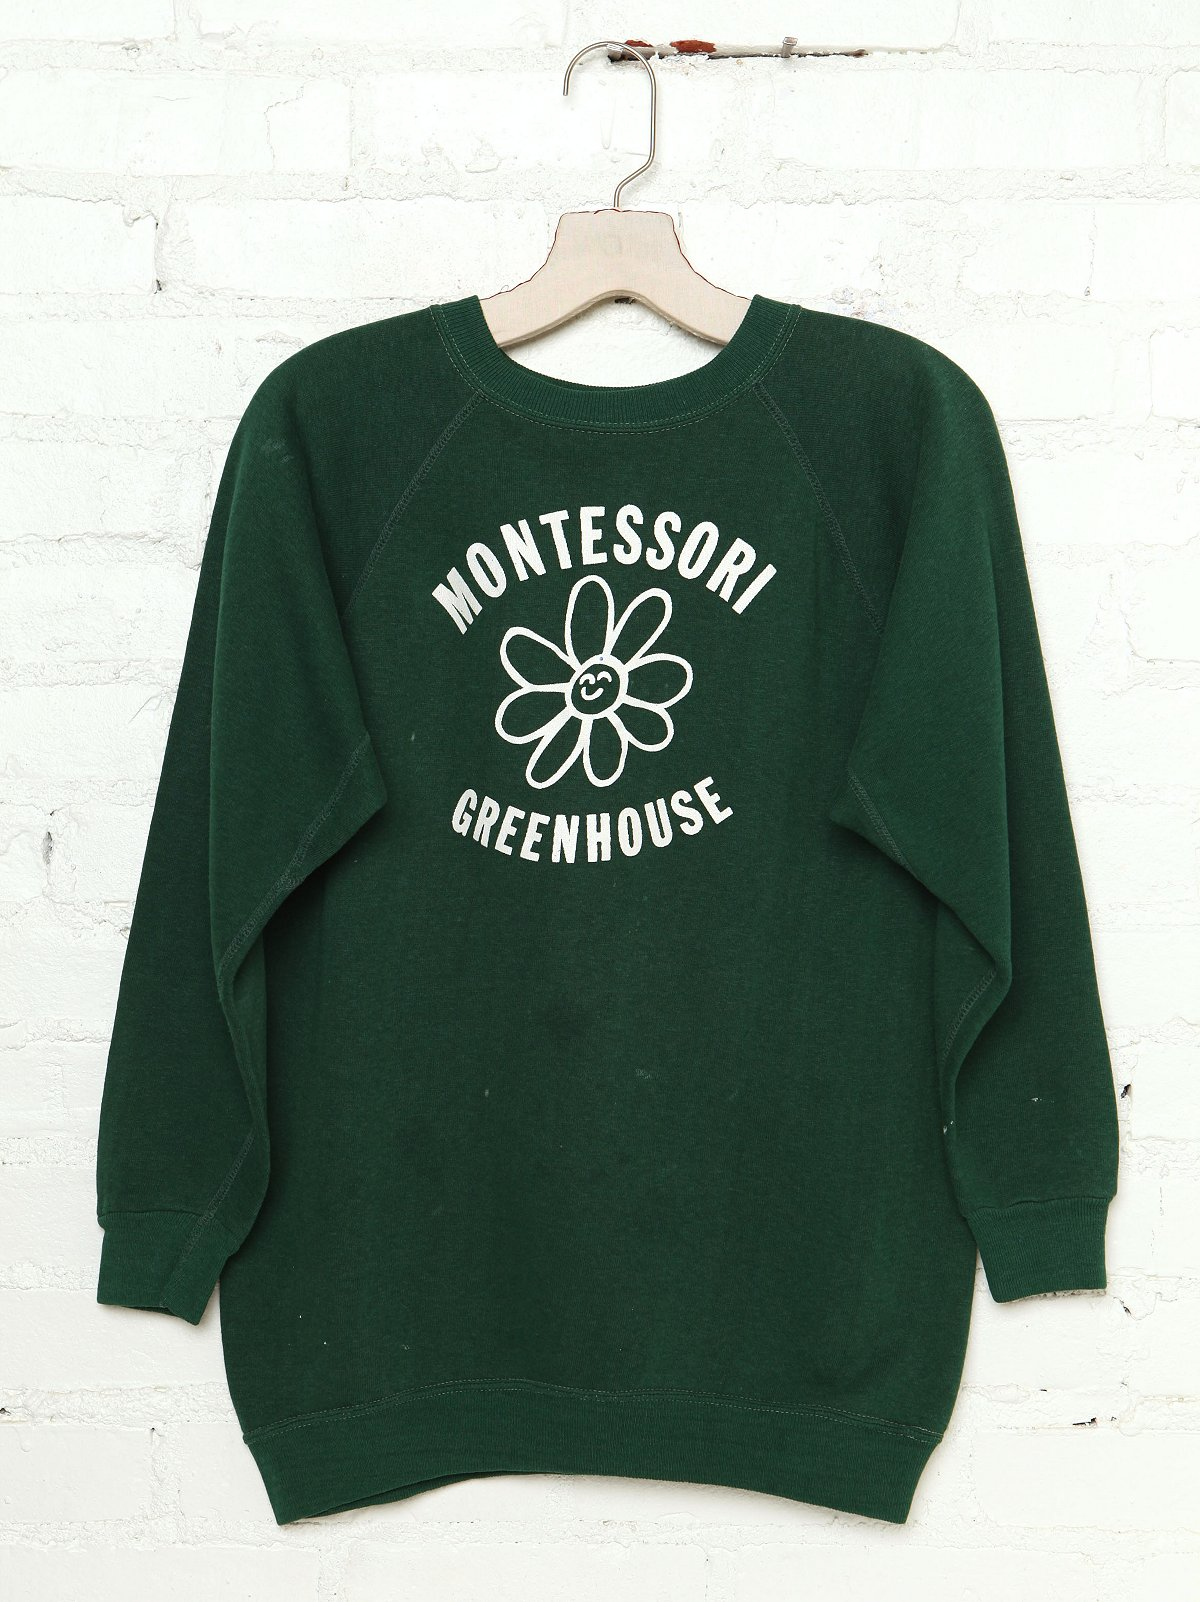 Vintage Montessori Greenhouse Sweatshirt